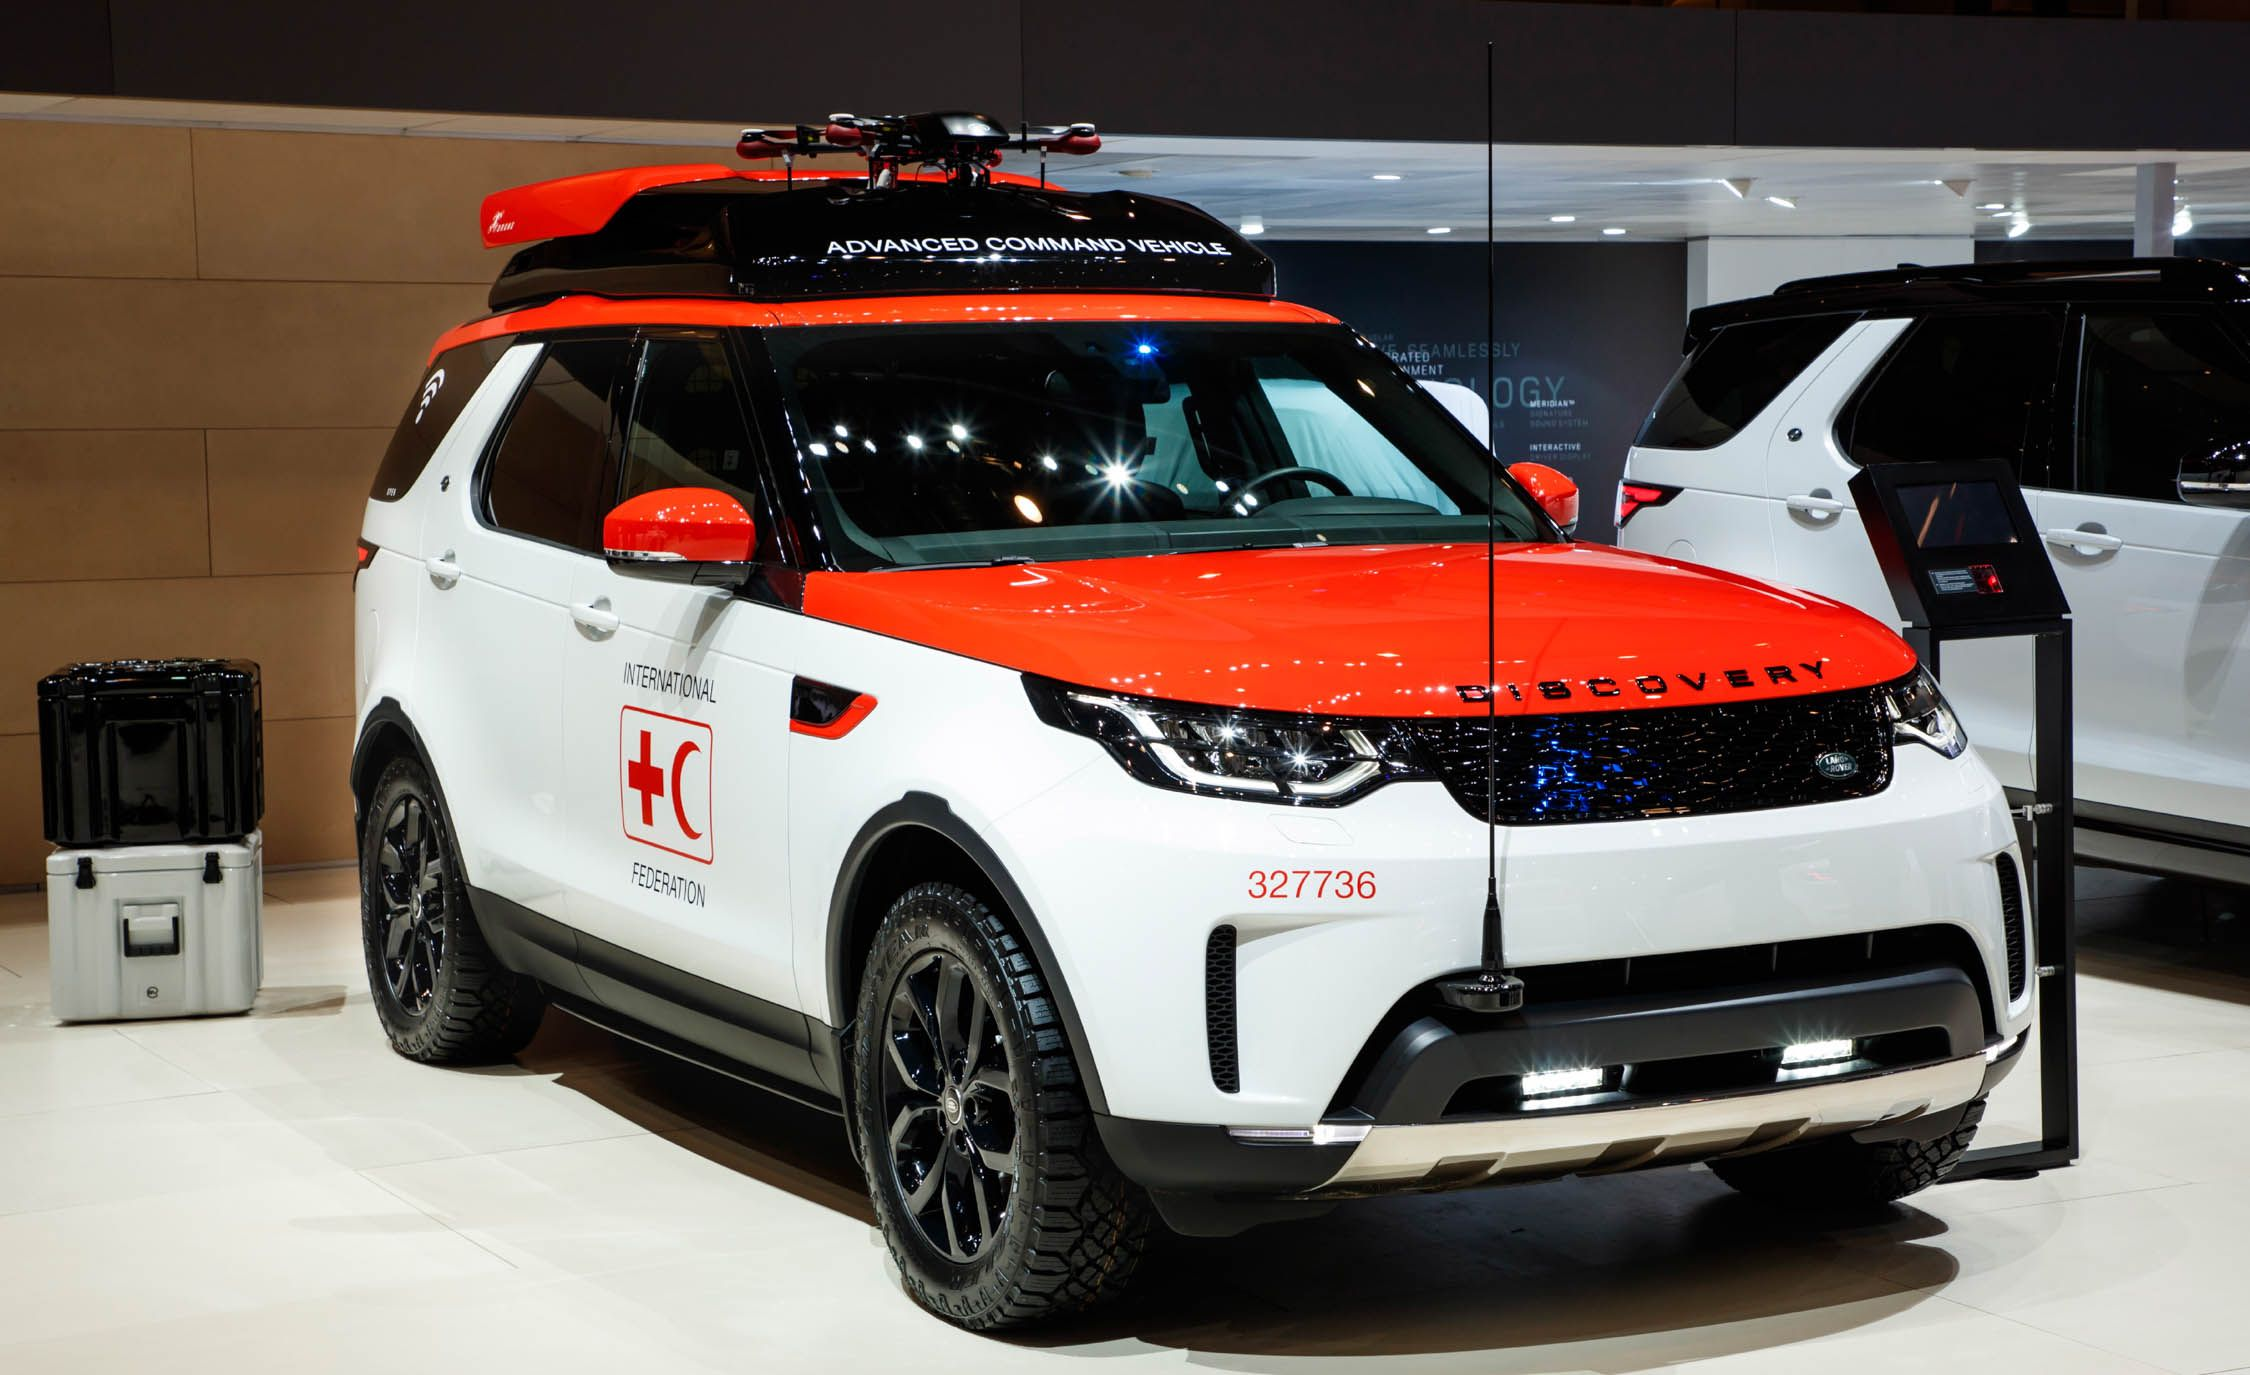 This Land Rover Is a Mobile Drone Dock for Disaster Relief